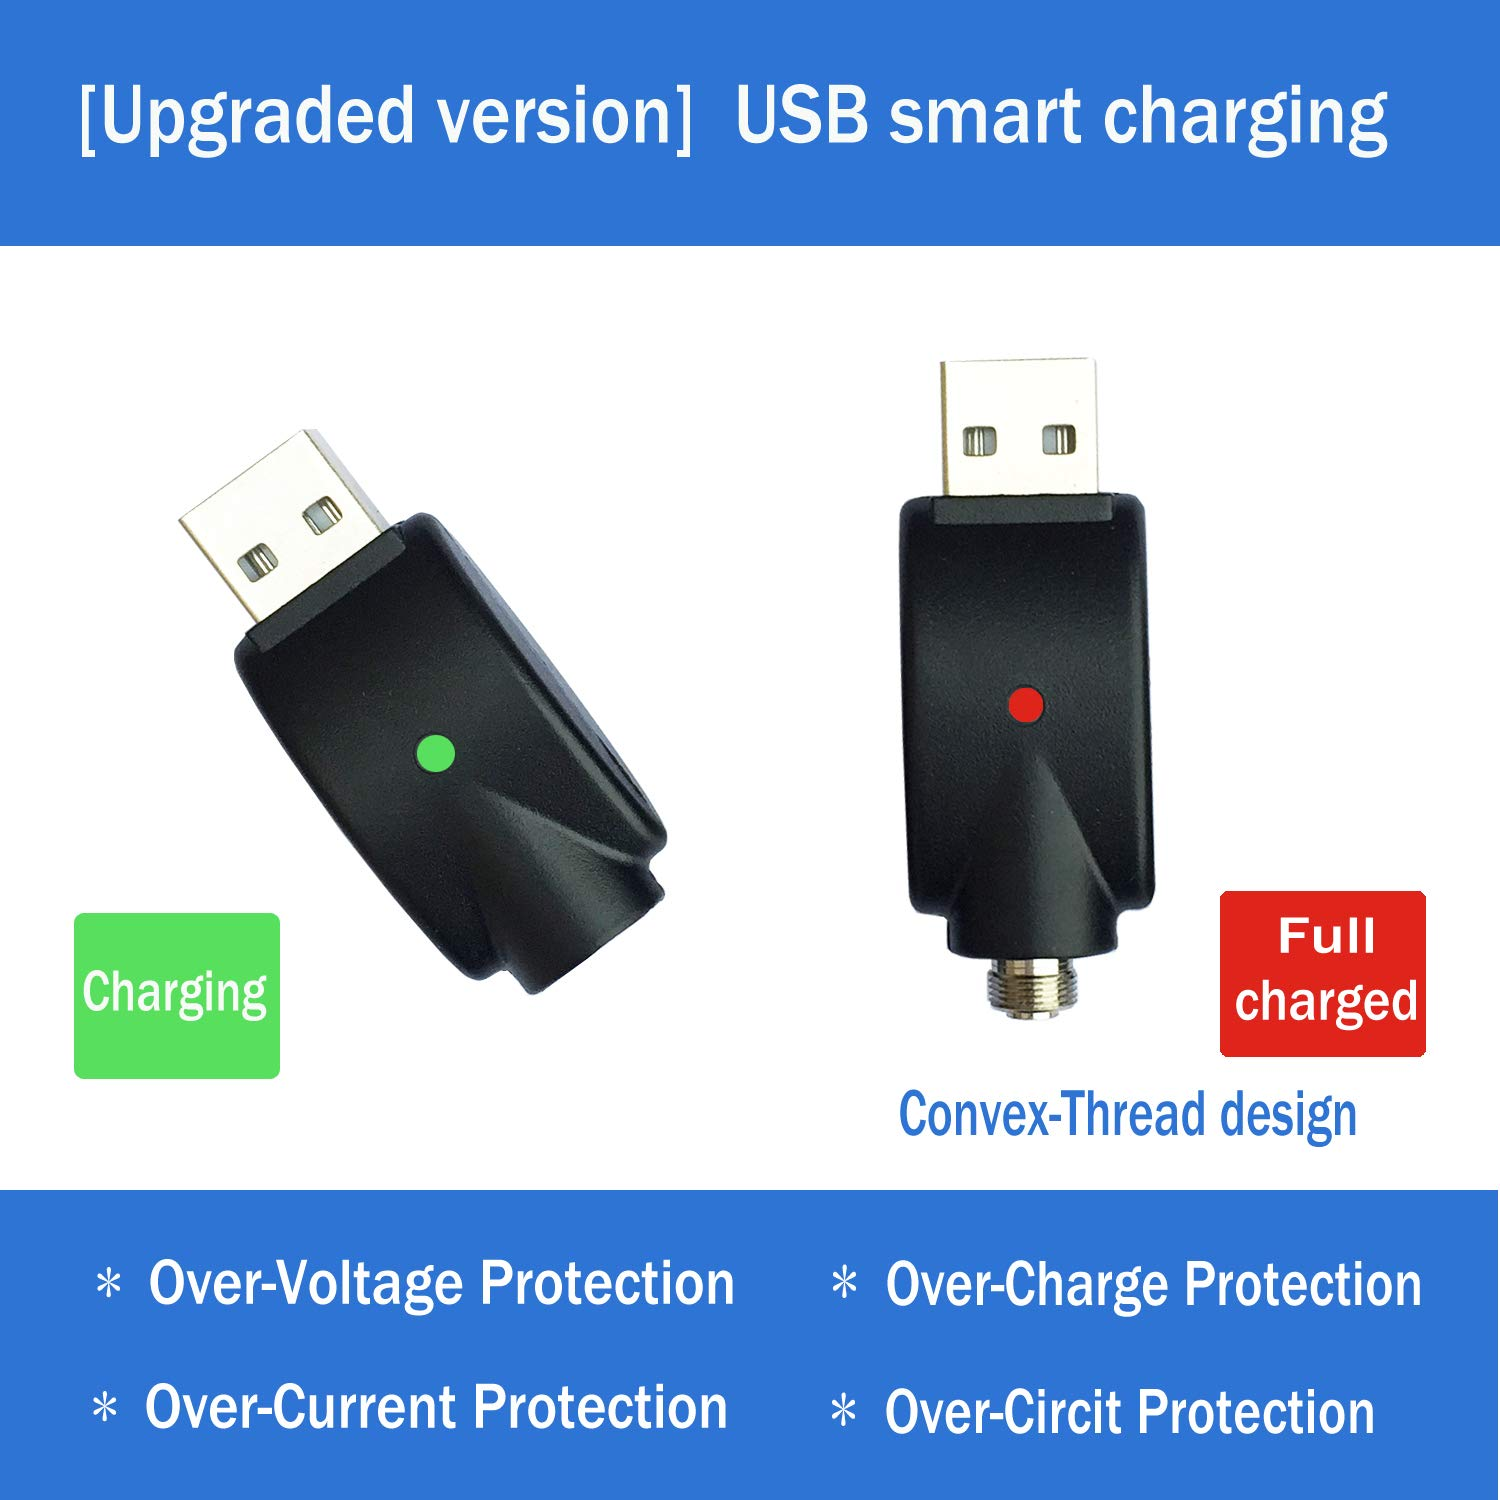 XXQCNCT USB Charge Thread Charger Smart Over-Charge Protection for USB Adapter Devices with LED Indicator Light Compatible with Standard Threaded Devices USB Charger Cable【3-Pack】